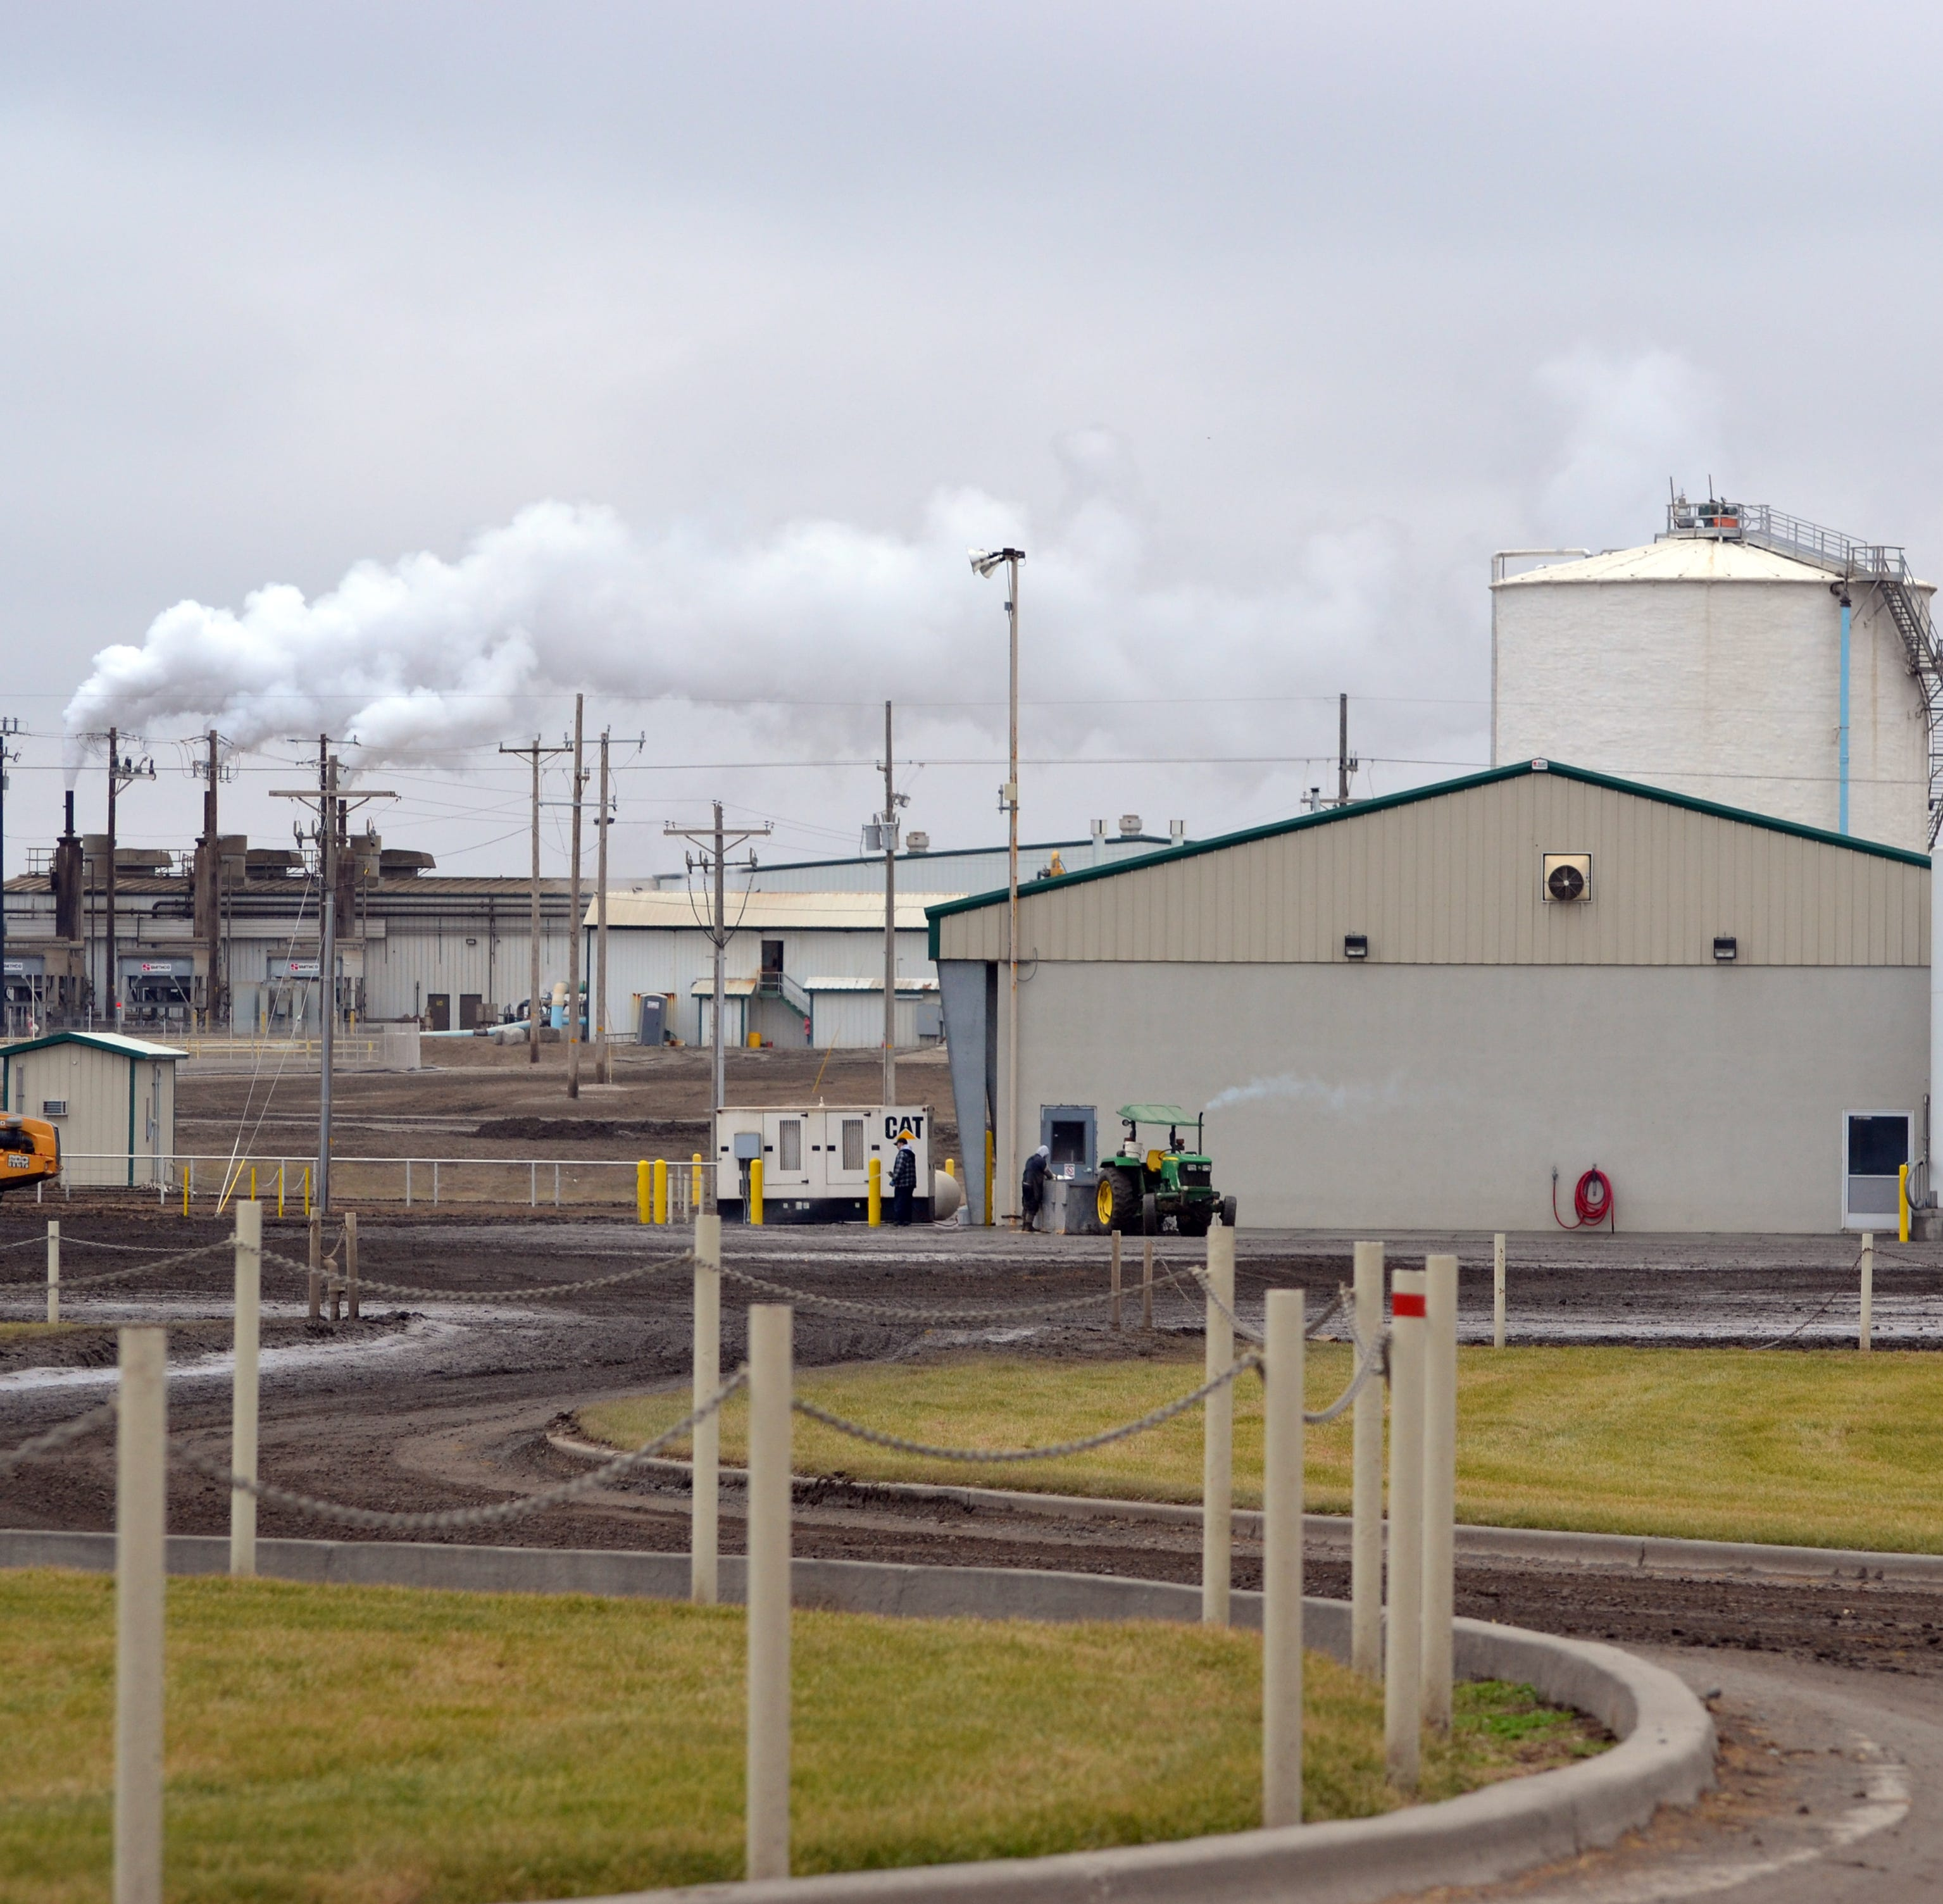 Manure is big business at Oregon's largest dairy with conversion to natural gas